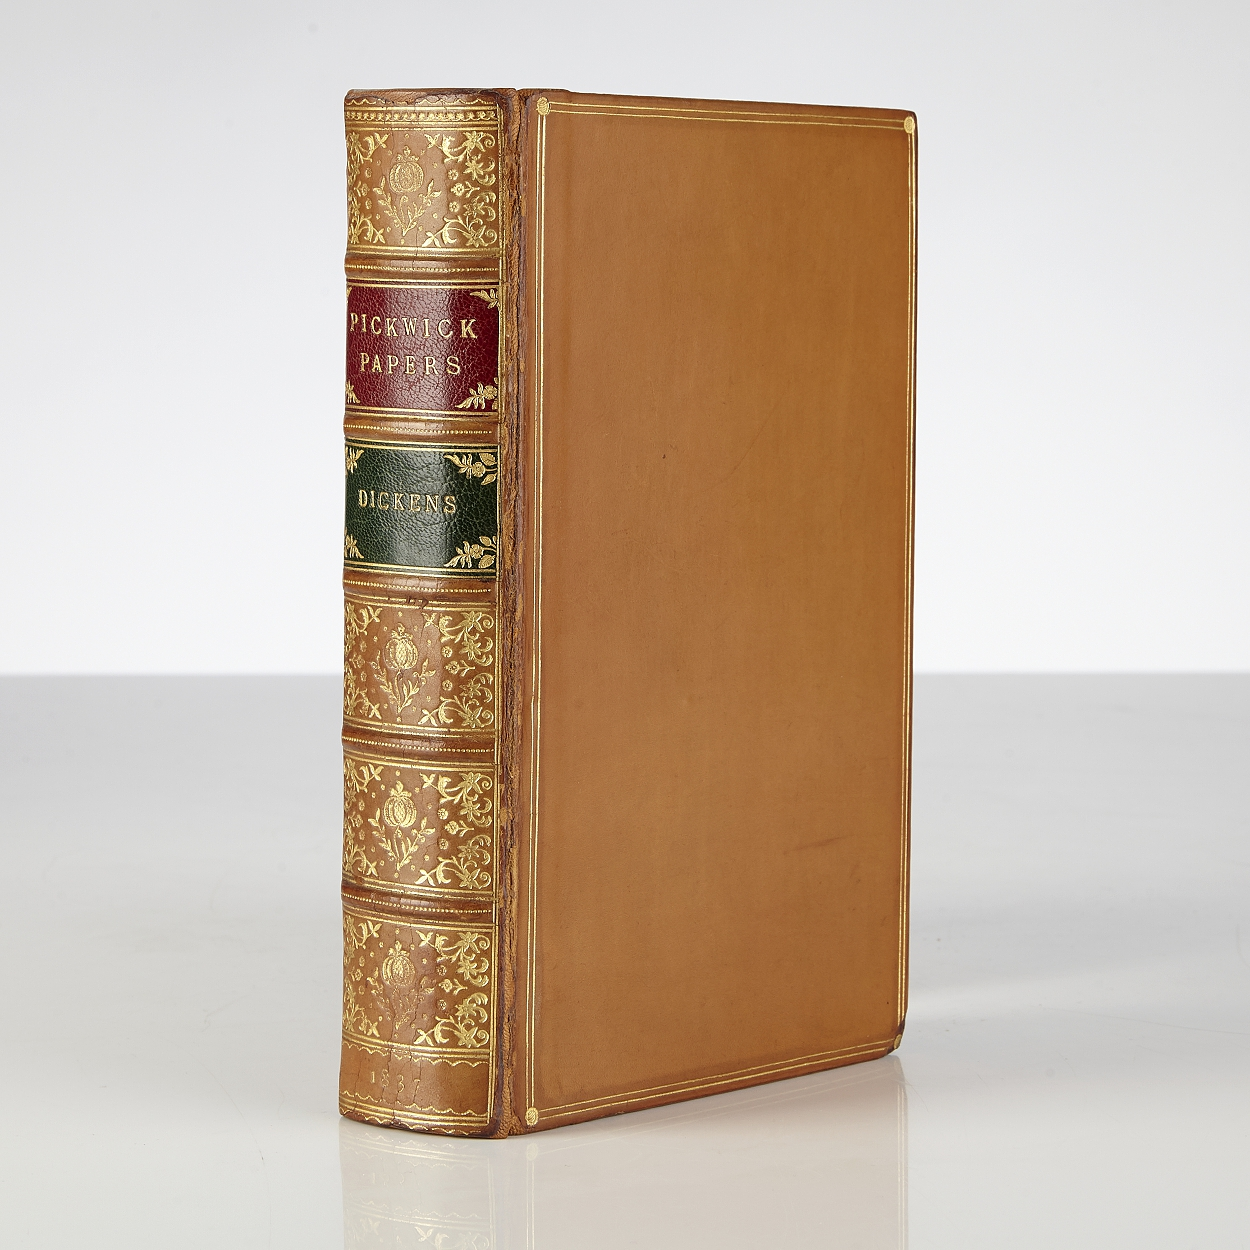 Dickens Pickwick Club 1836-37 first book edition